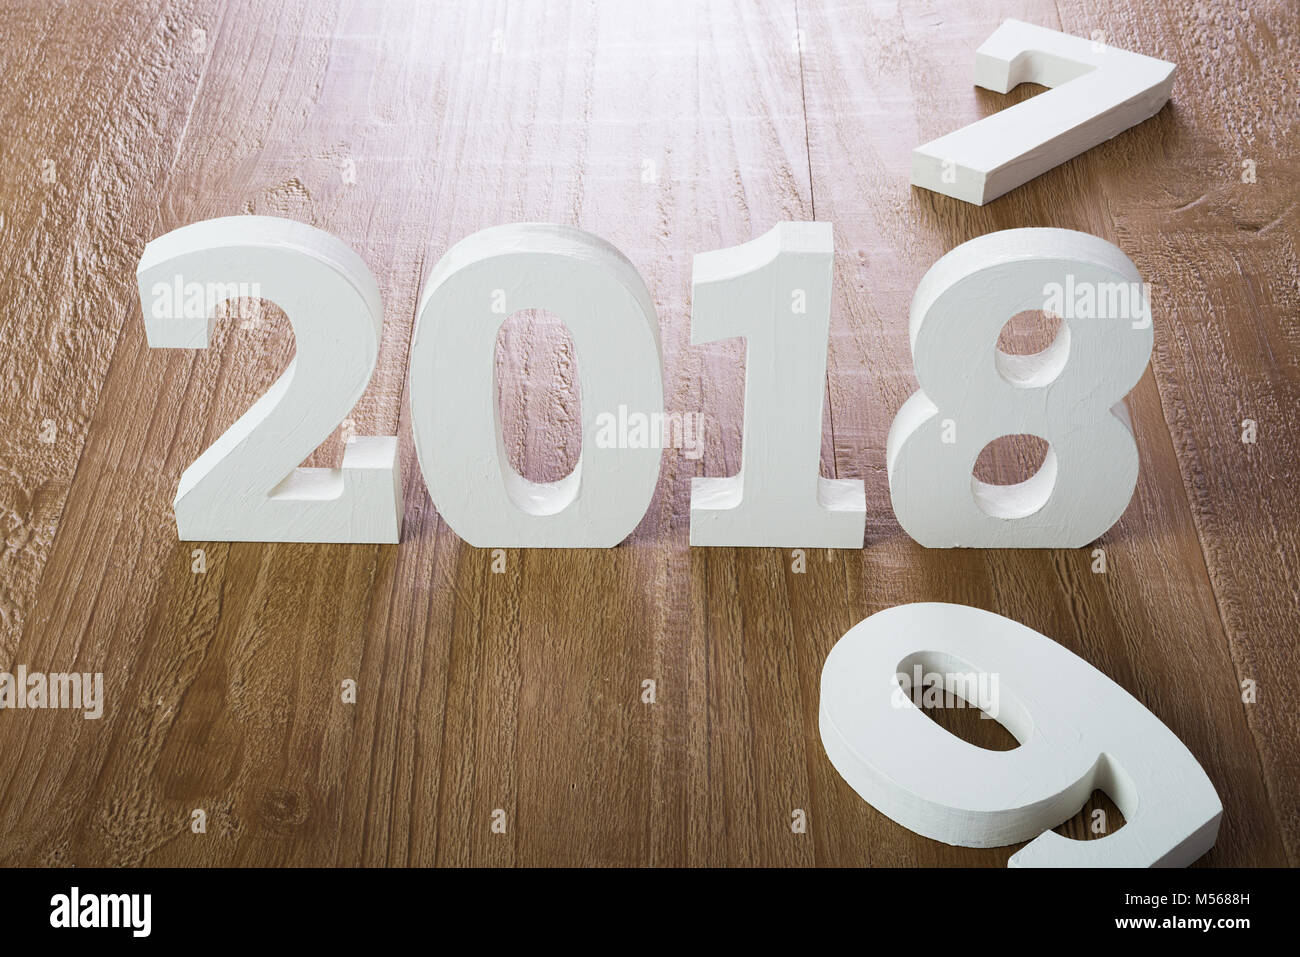 White digits 2018 on wooden background - Stock Image